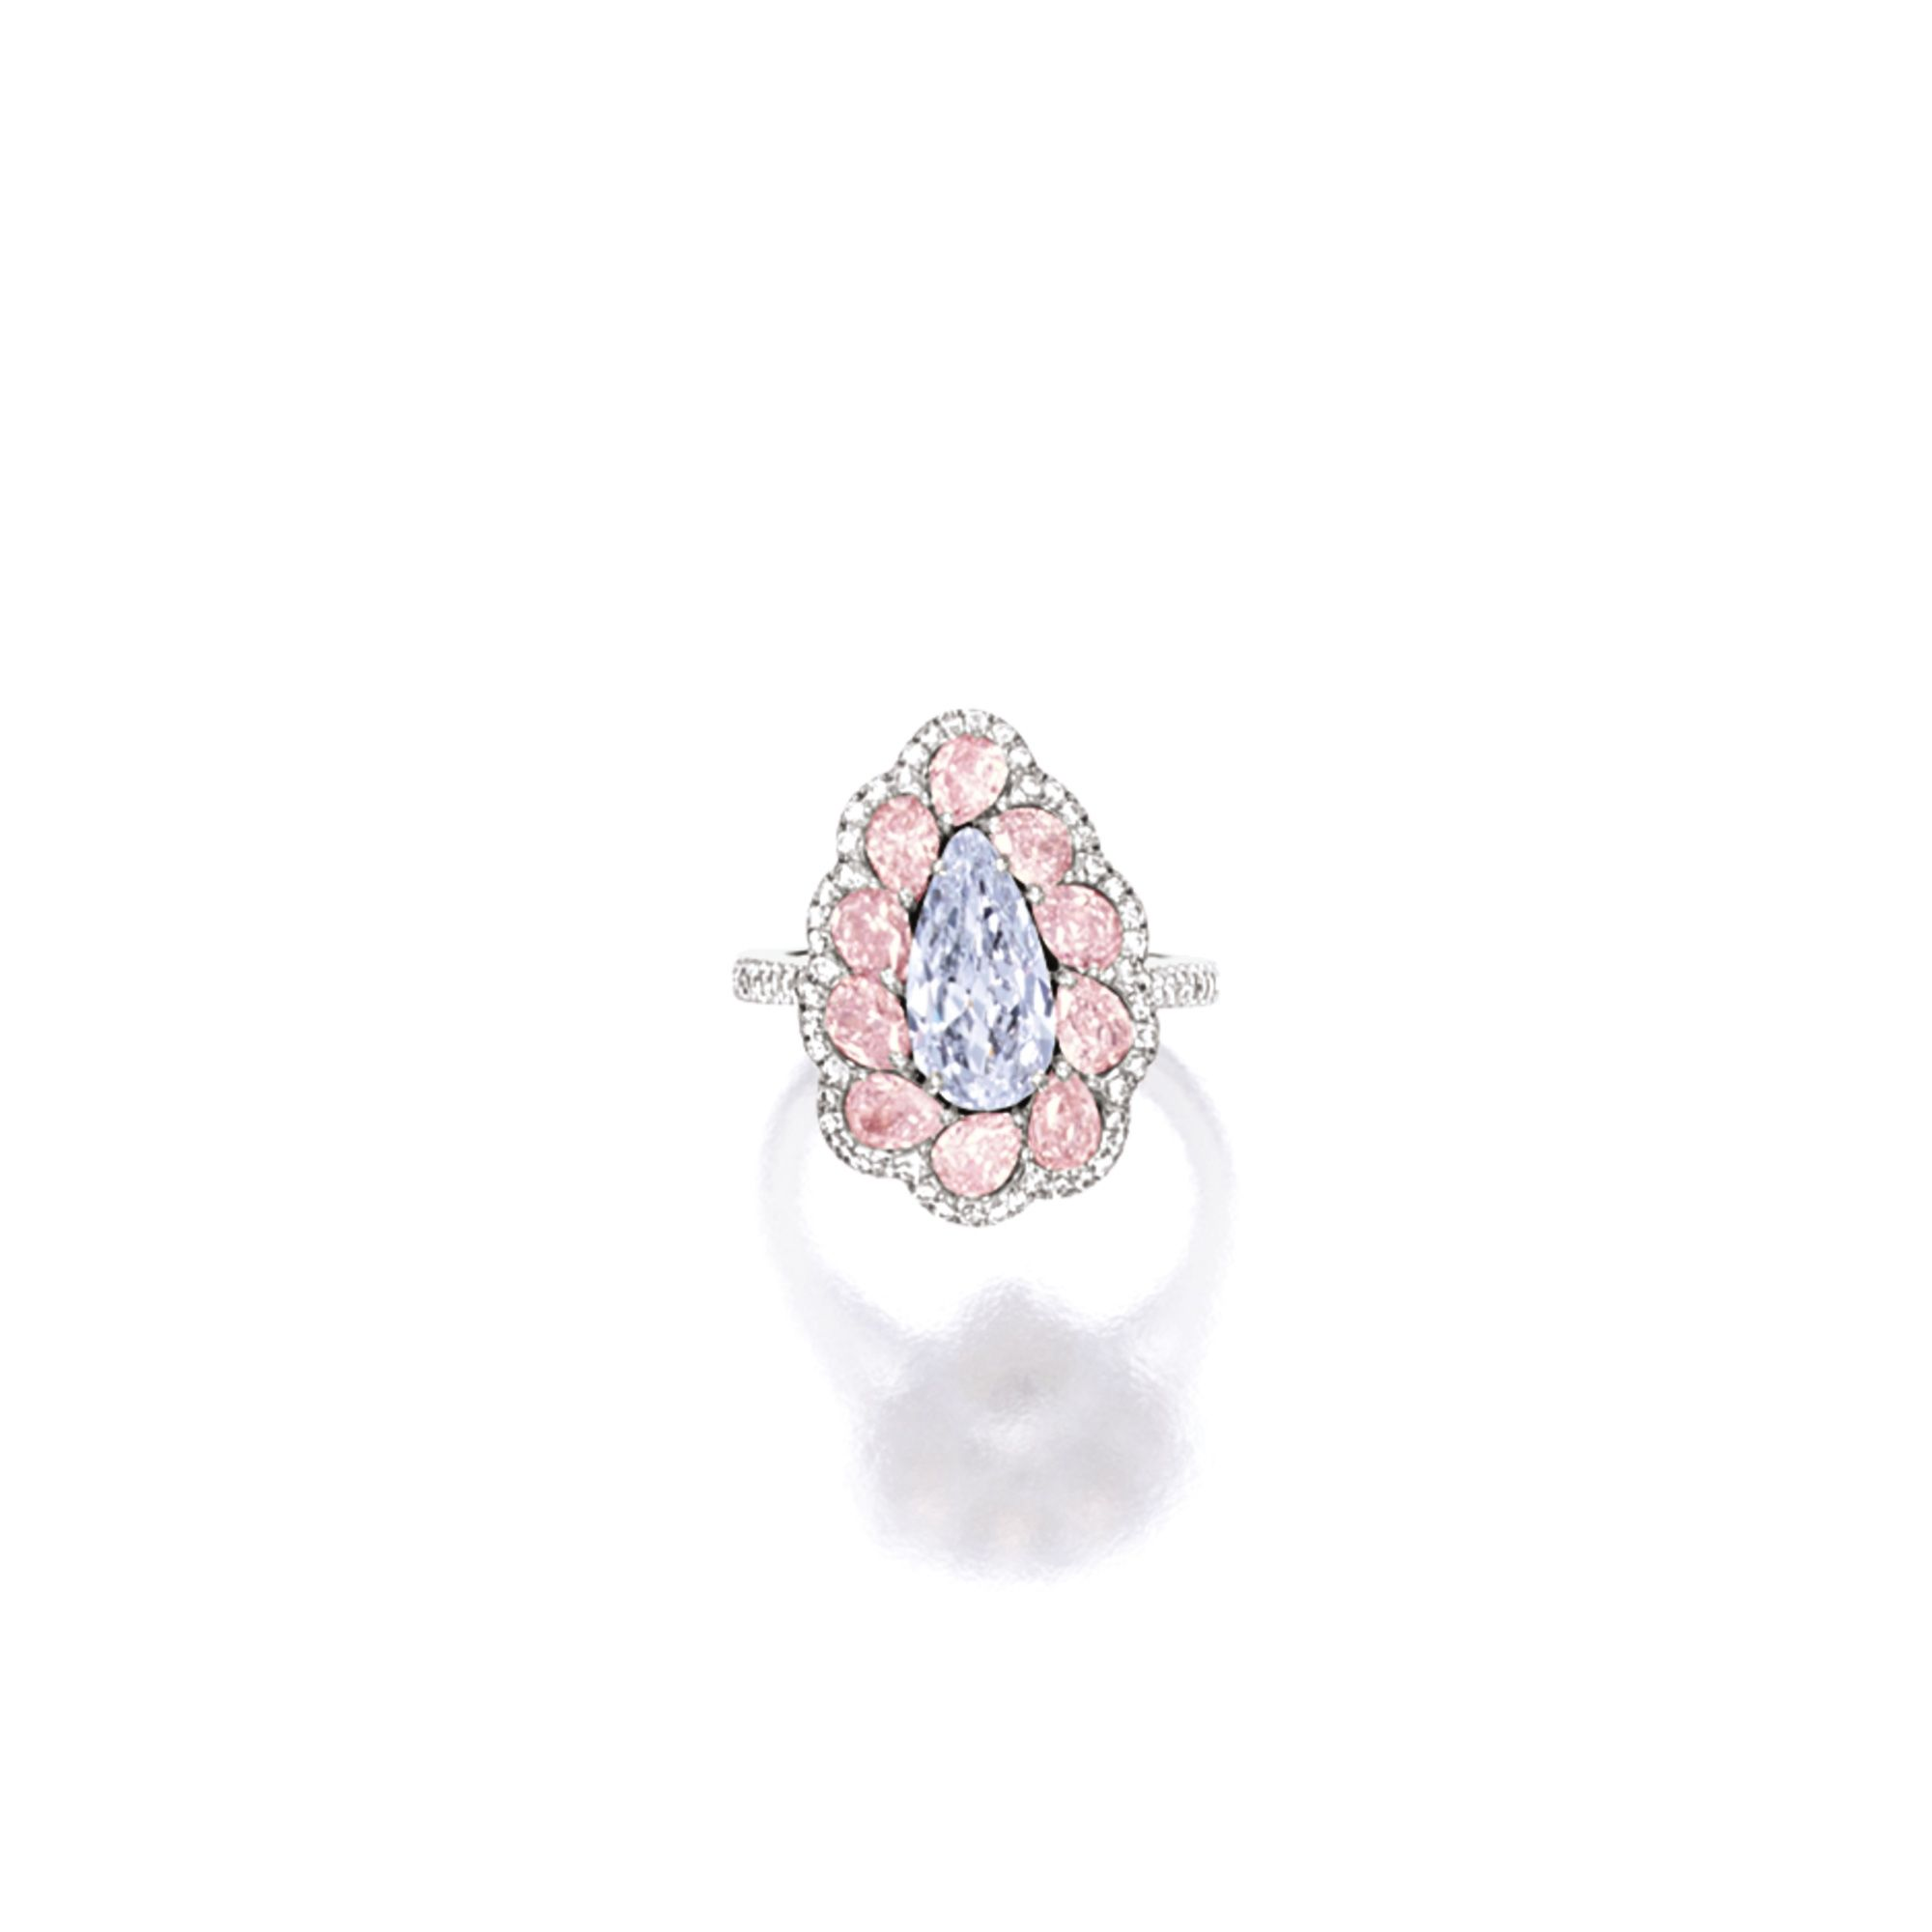 engagement marquise carat of man new best pinterest wonderful images rings solitaire unique on diamond did my pink